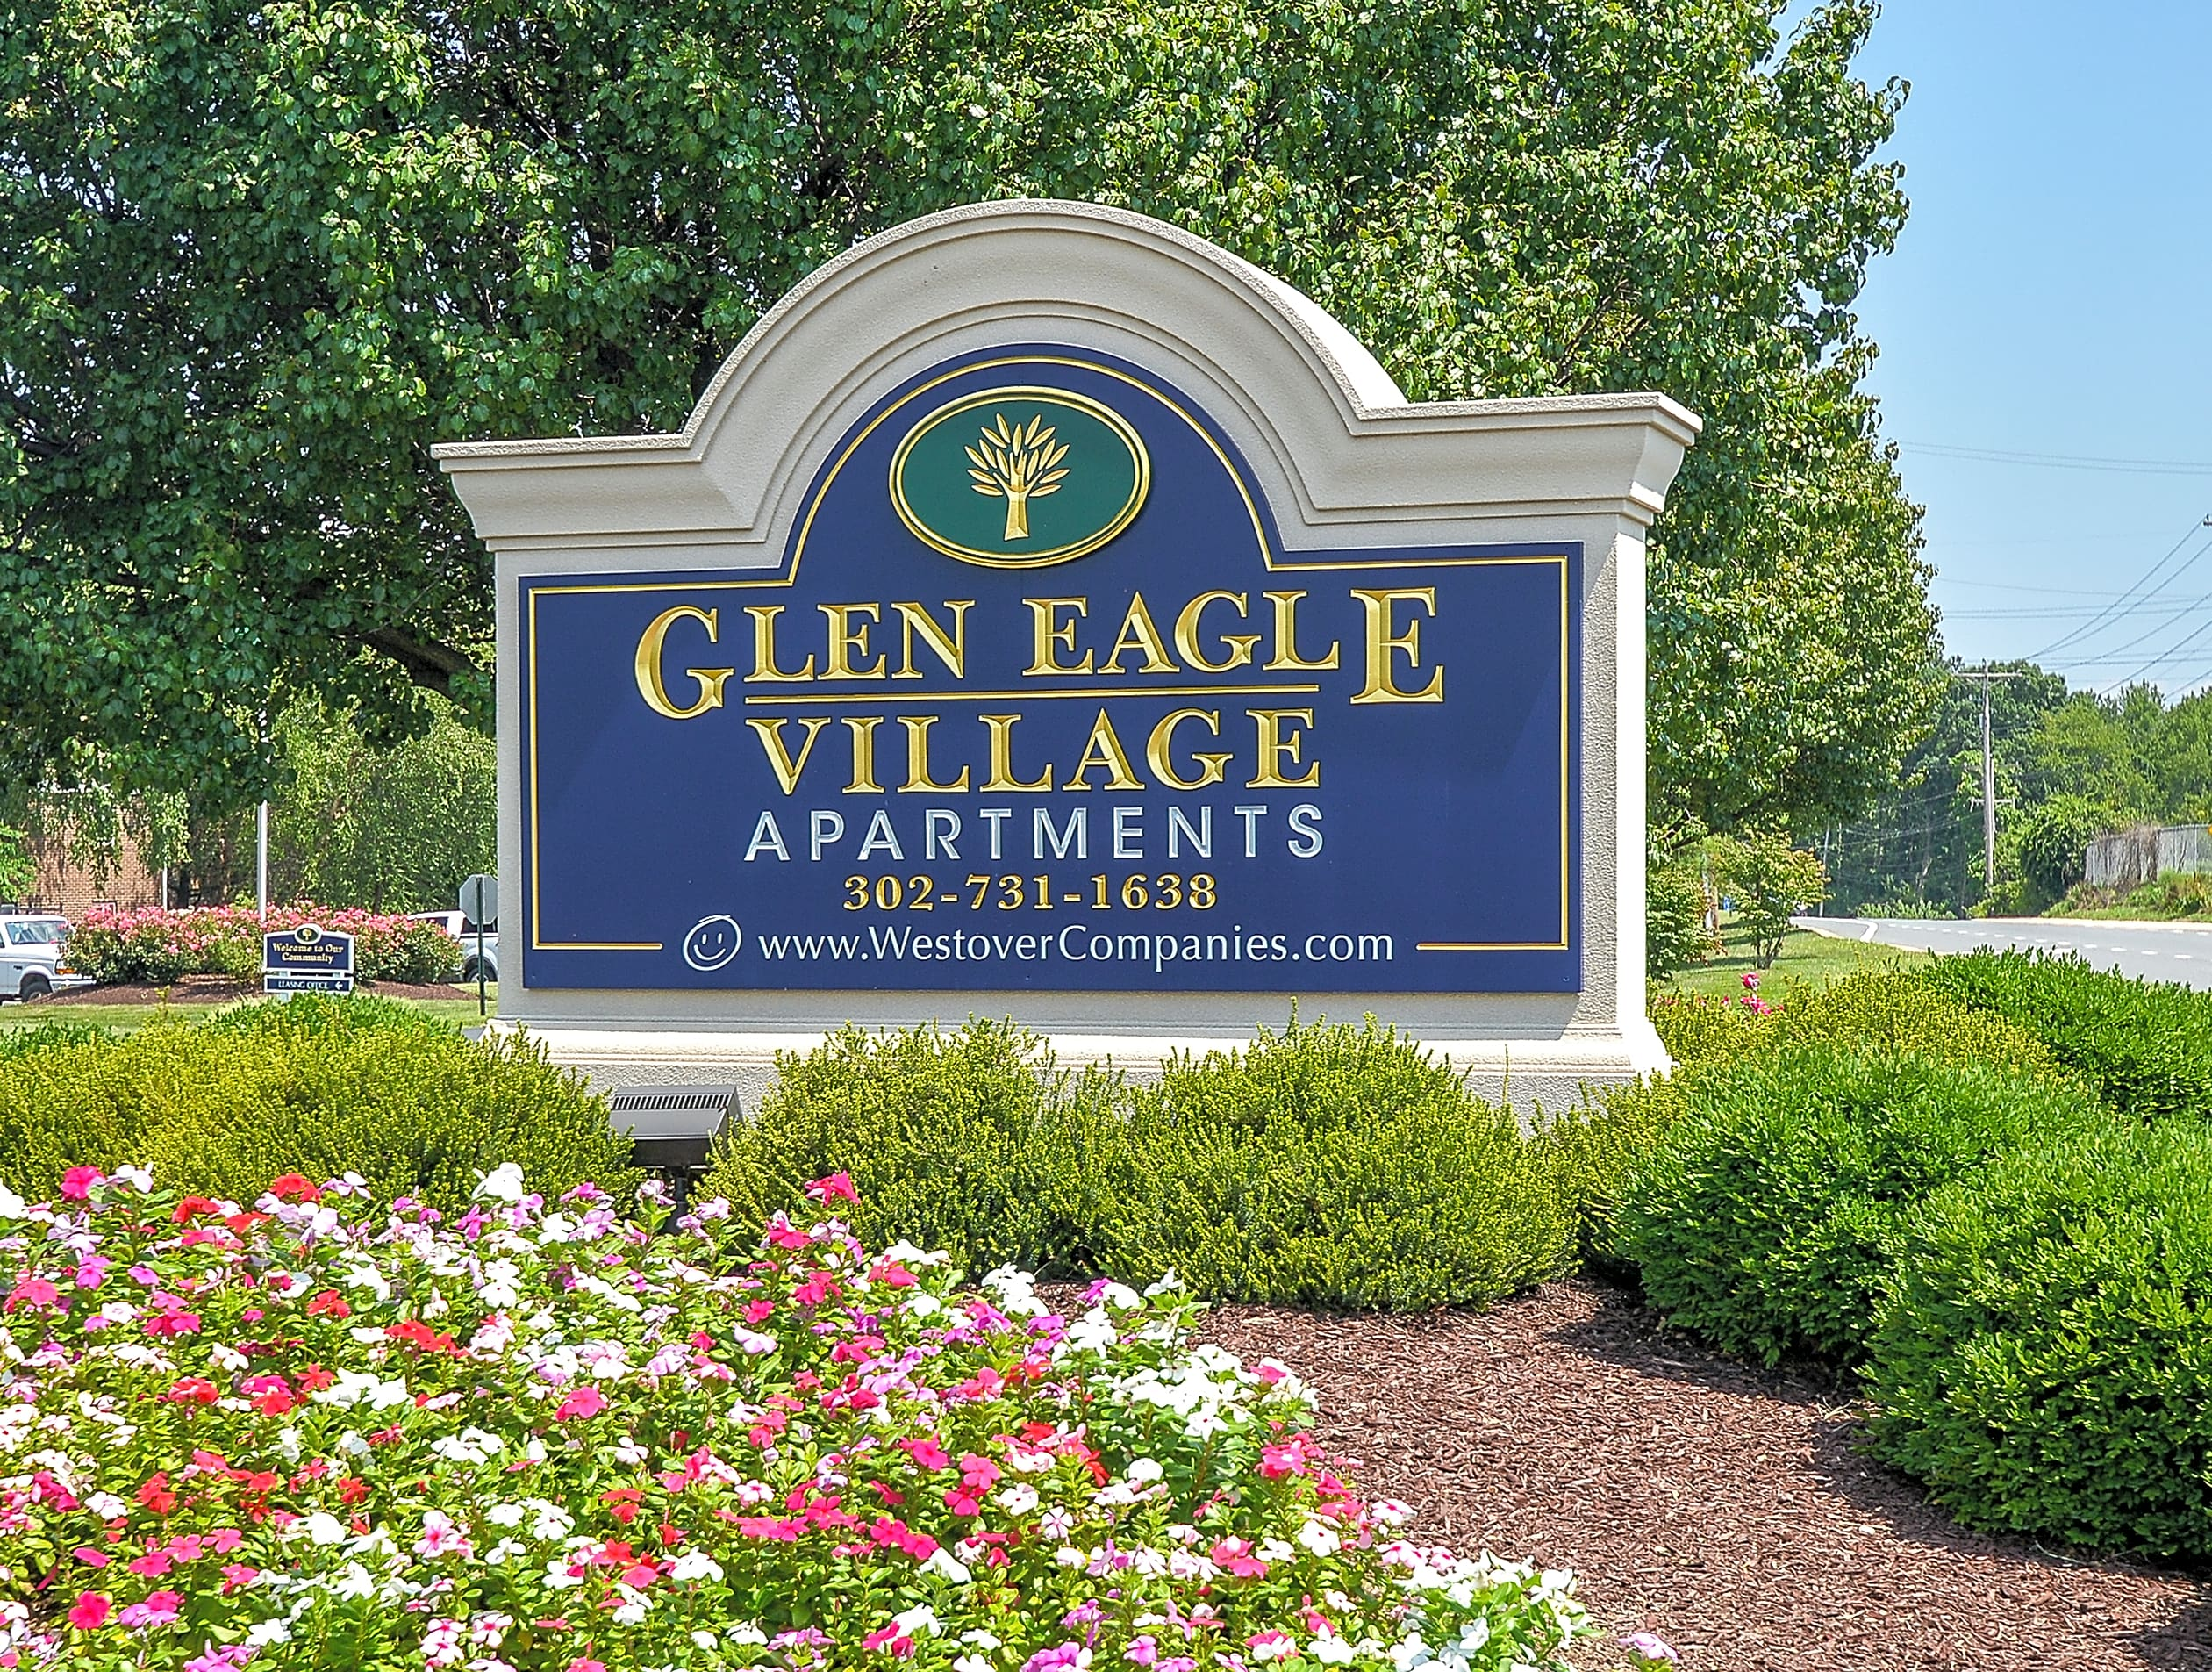 Apartments Near Delaware Glen Eagle Village for University of Delaware Students in Newark, DE